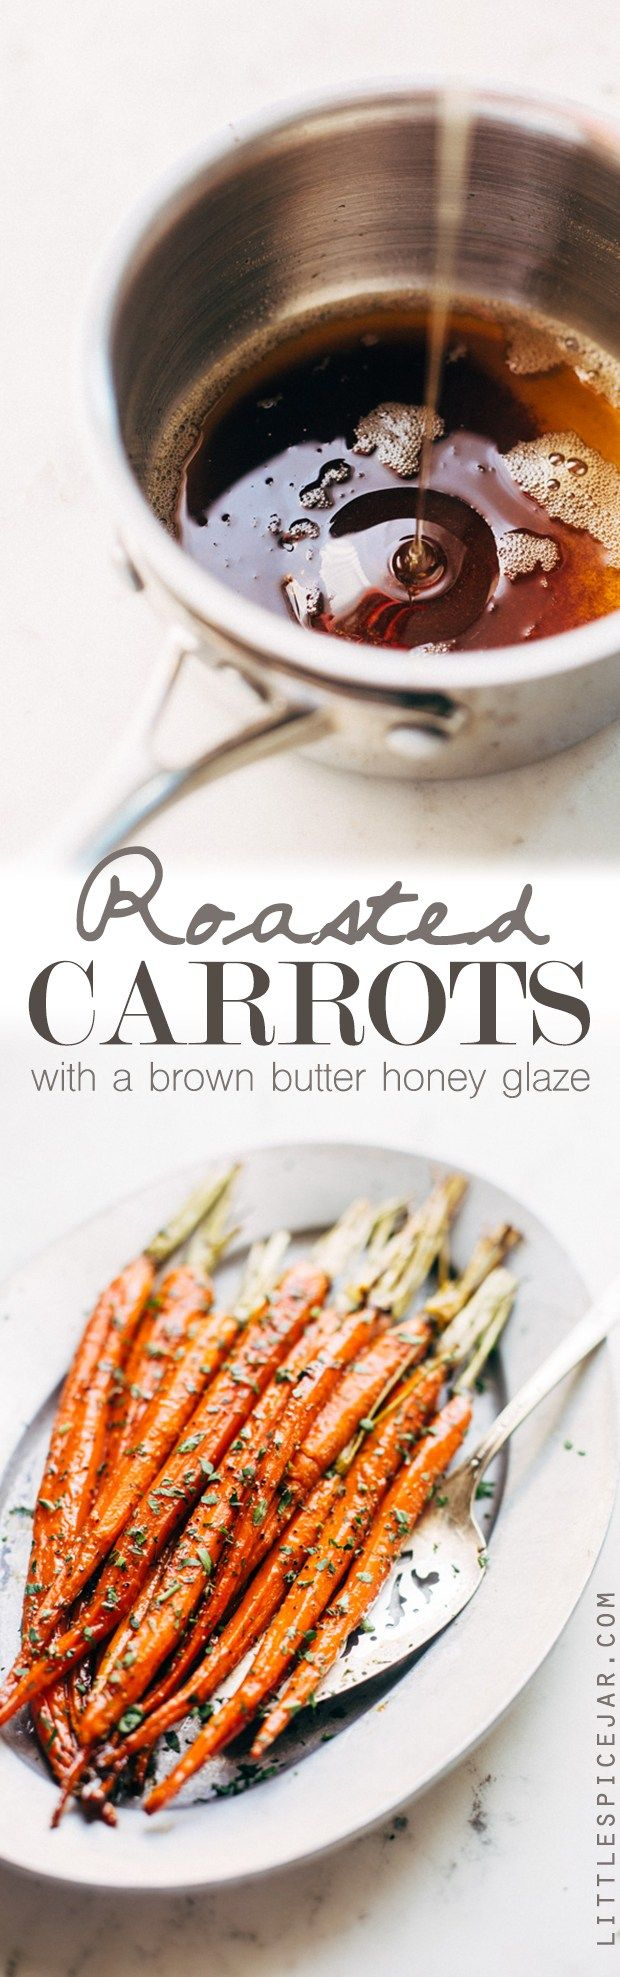 Brown Butter Honey Glazed Carrots - they might sound difficult but this is the easiest side dish! #brownbutter #honeyglazedcarrots #glazedcarrots   Littlespicejar.com